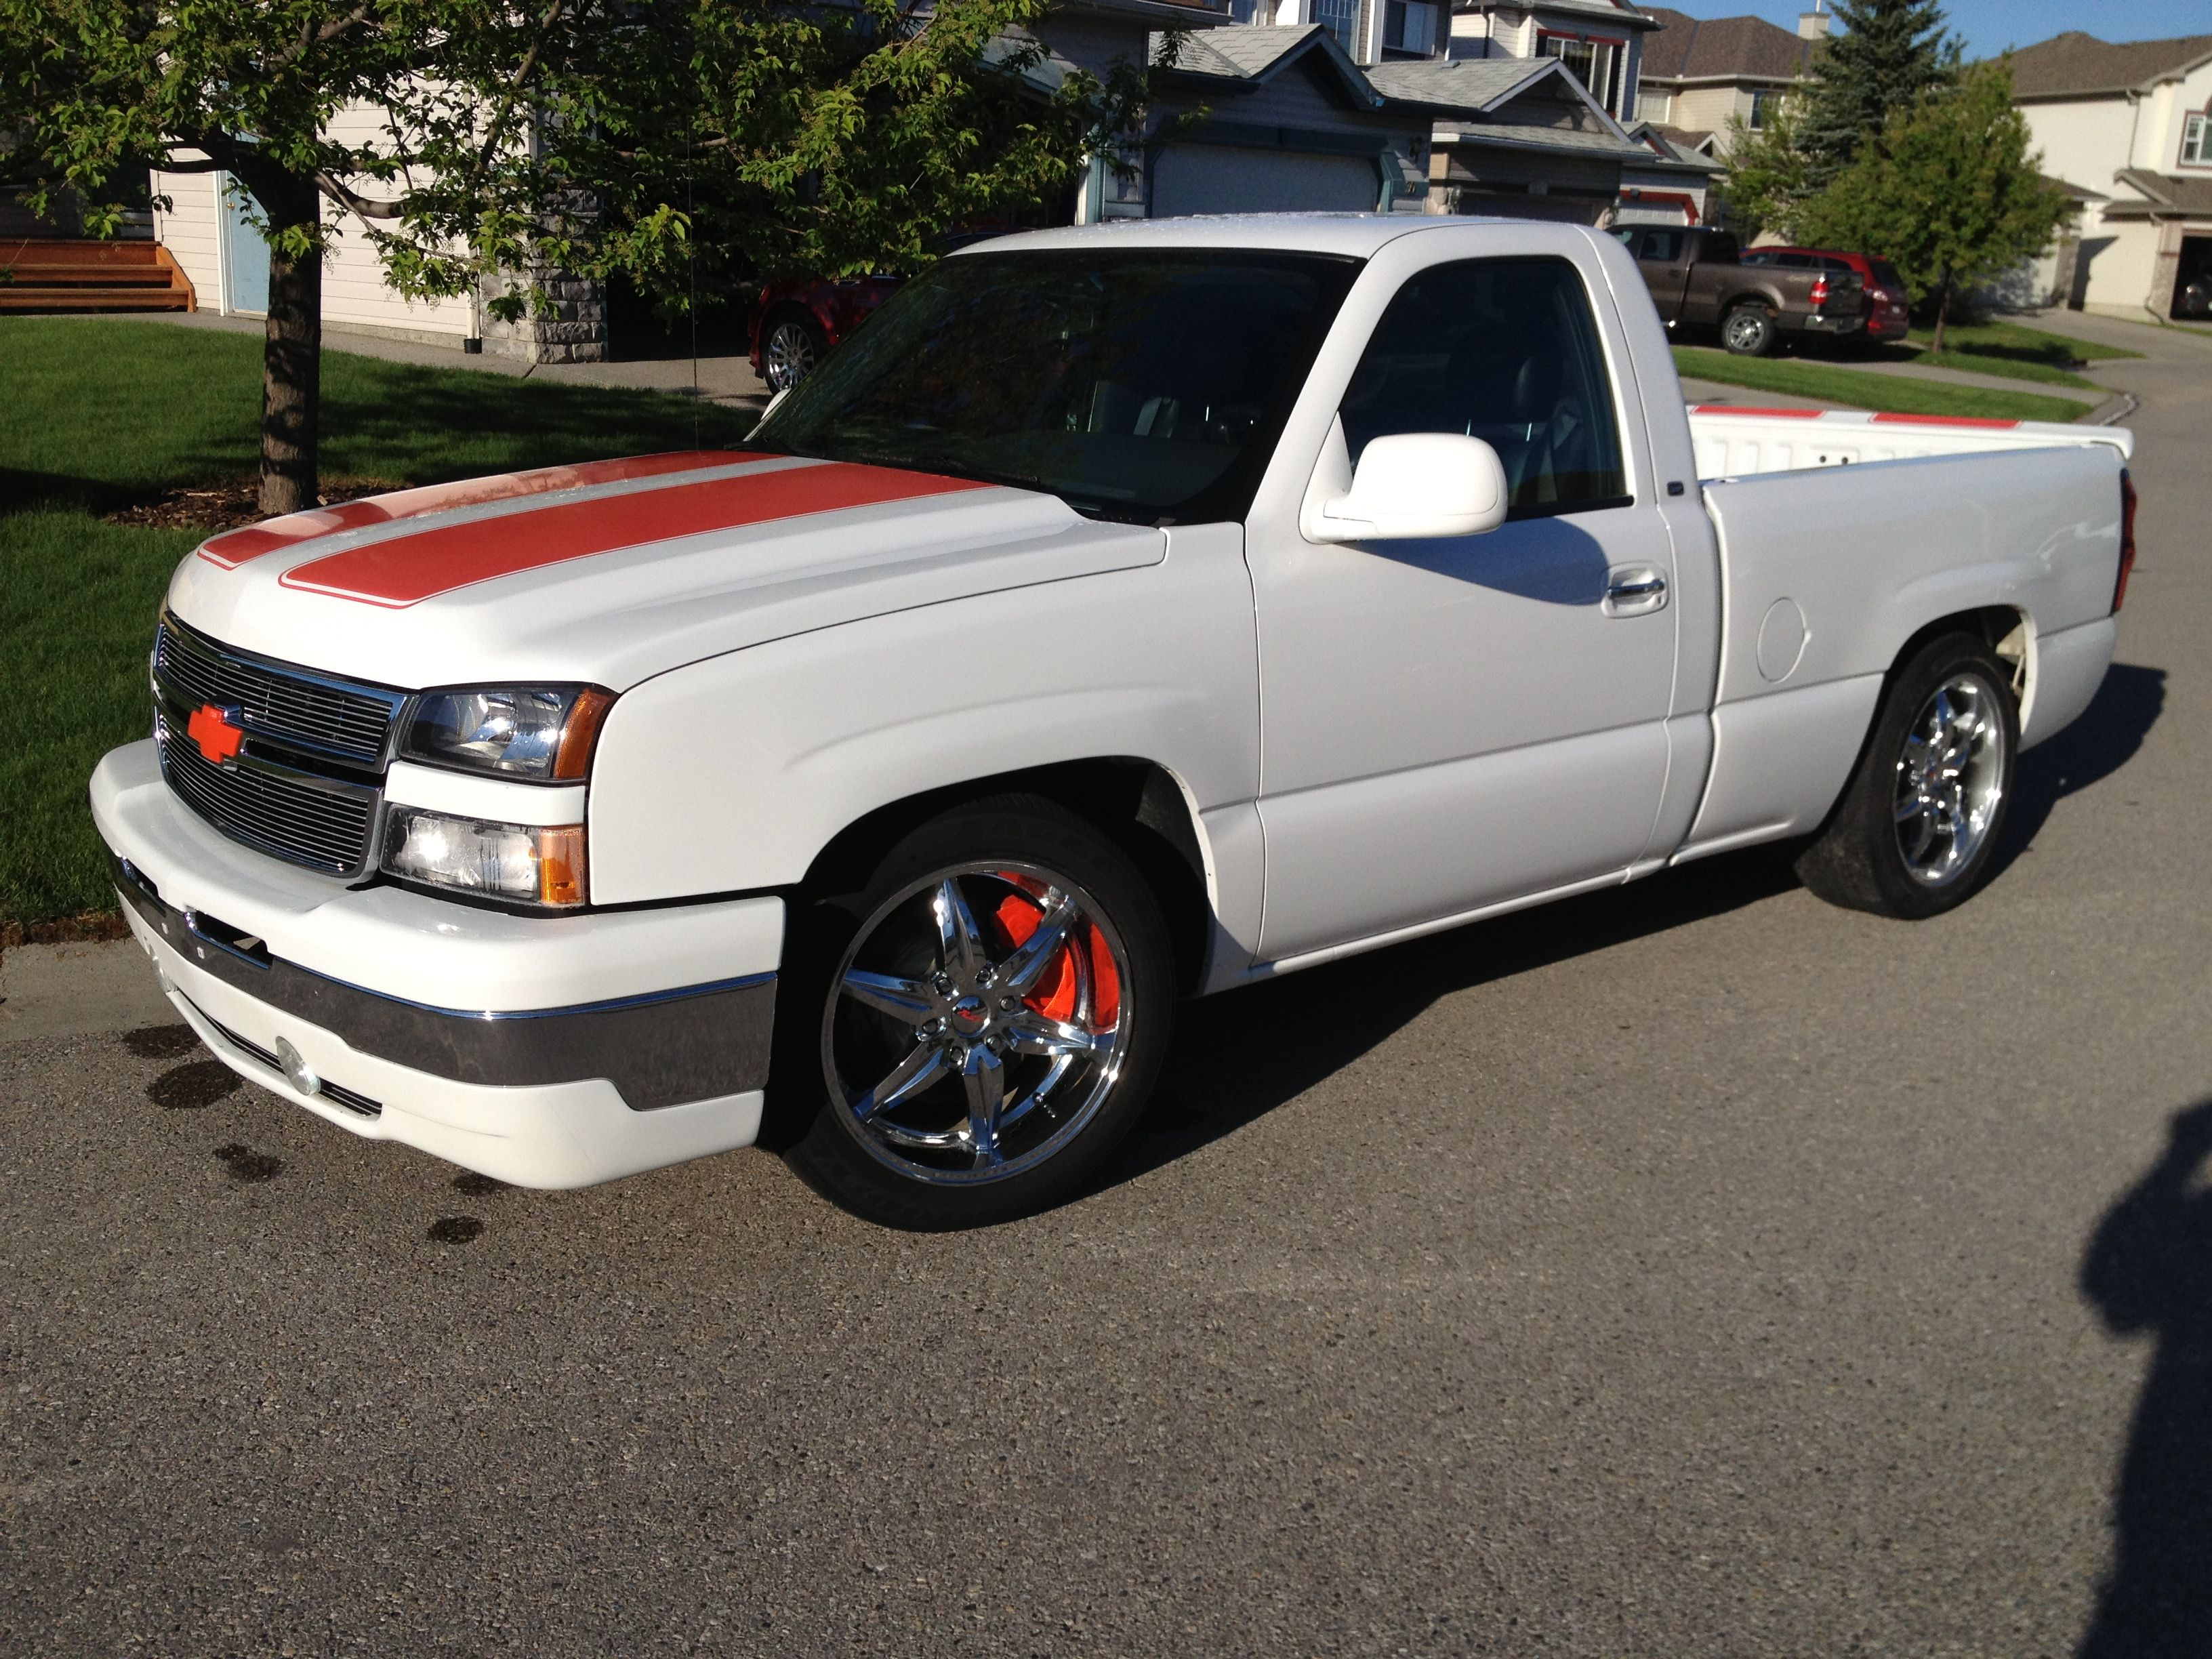 2006 RST Silverado one 200 made and sighed by Jon Moss